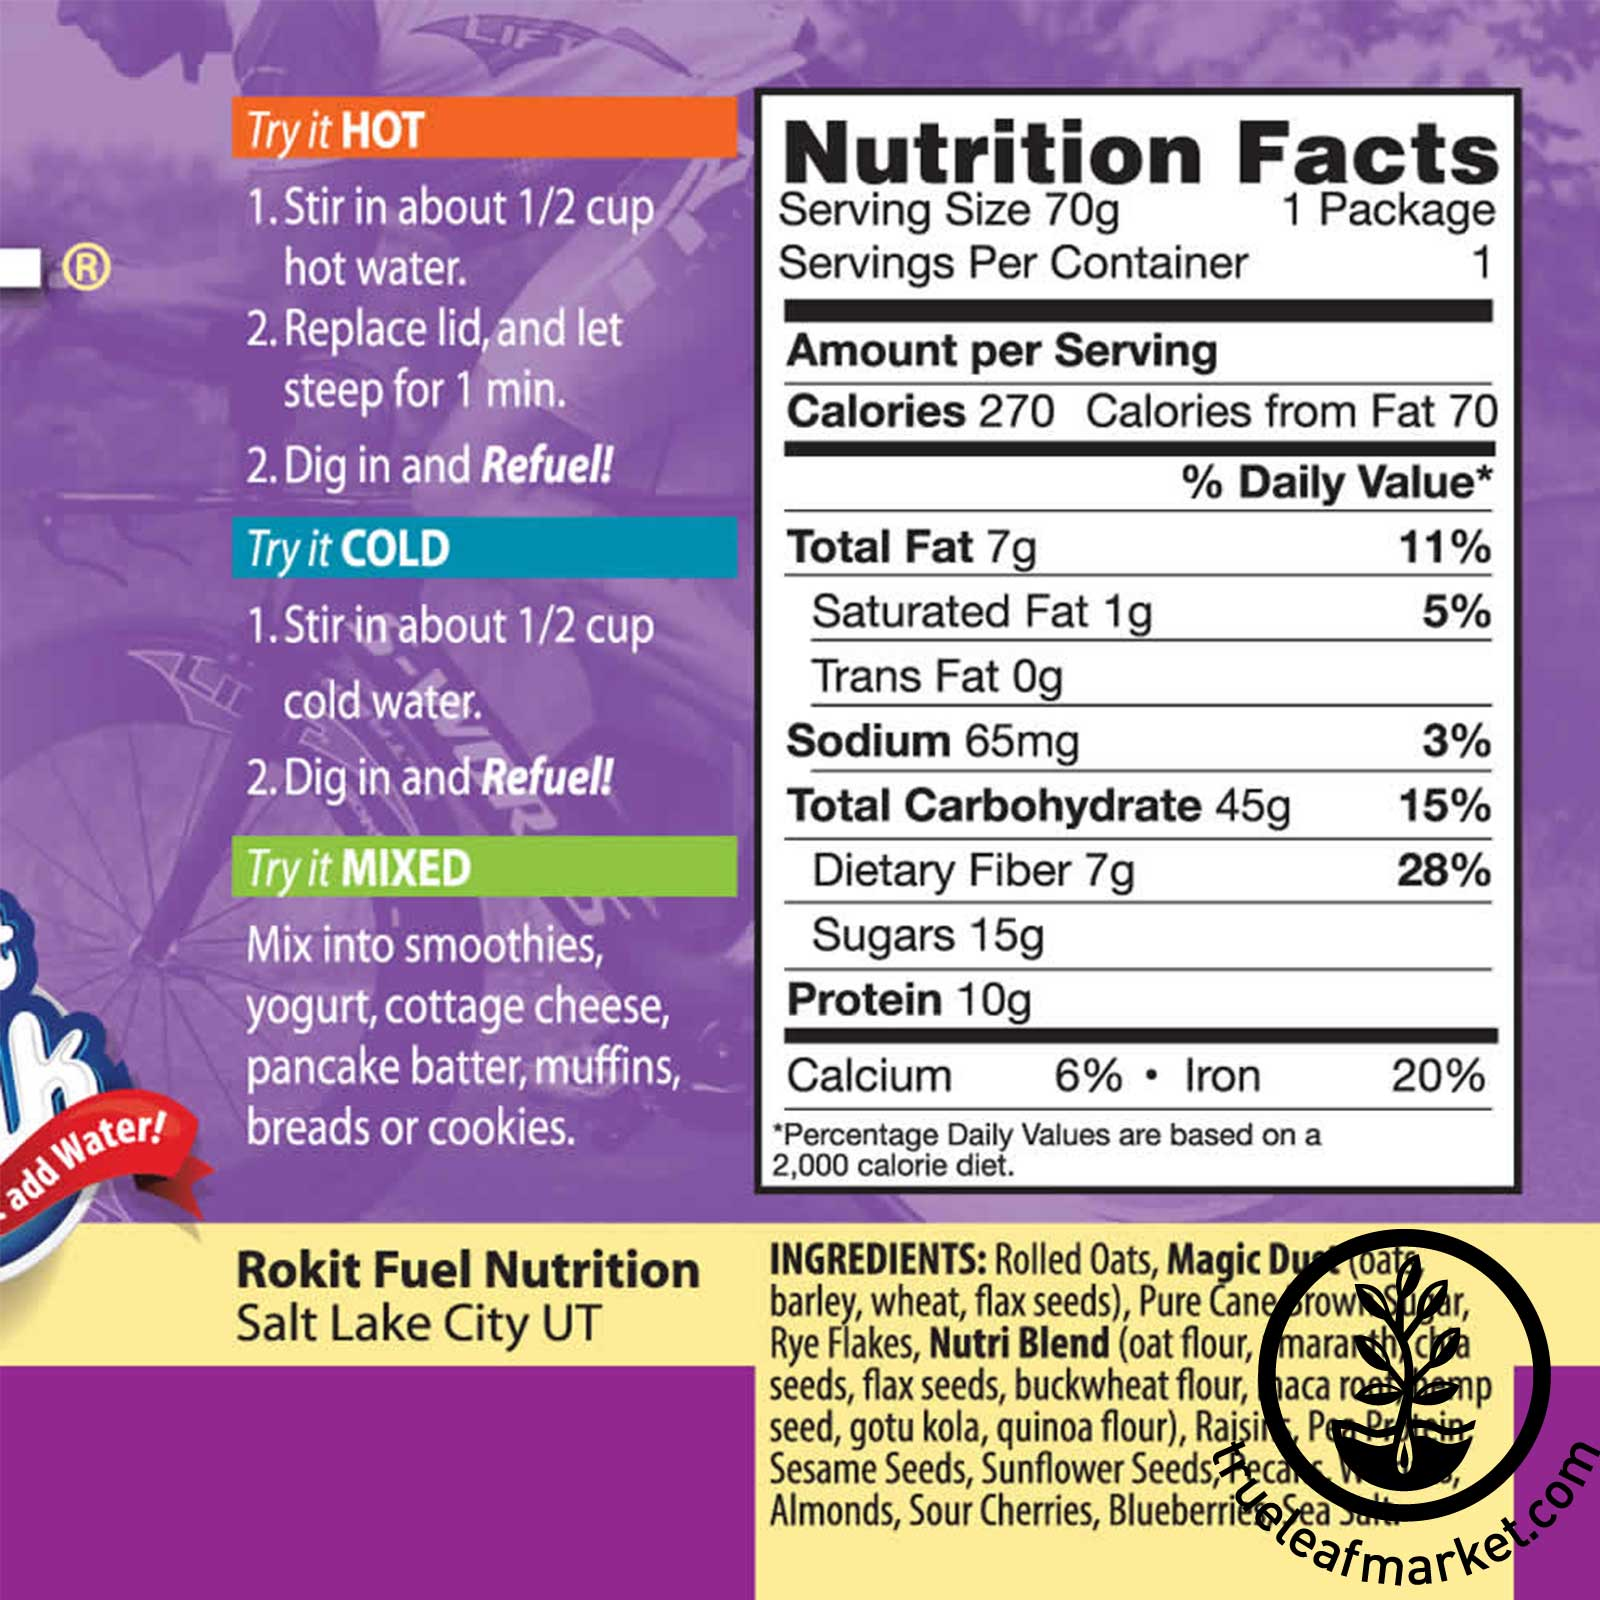 Nutritional Information - Oatmeal Super Cereal